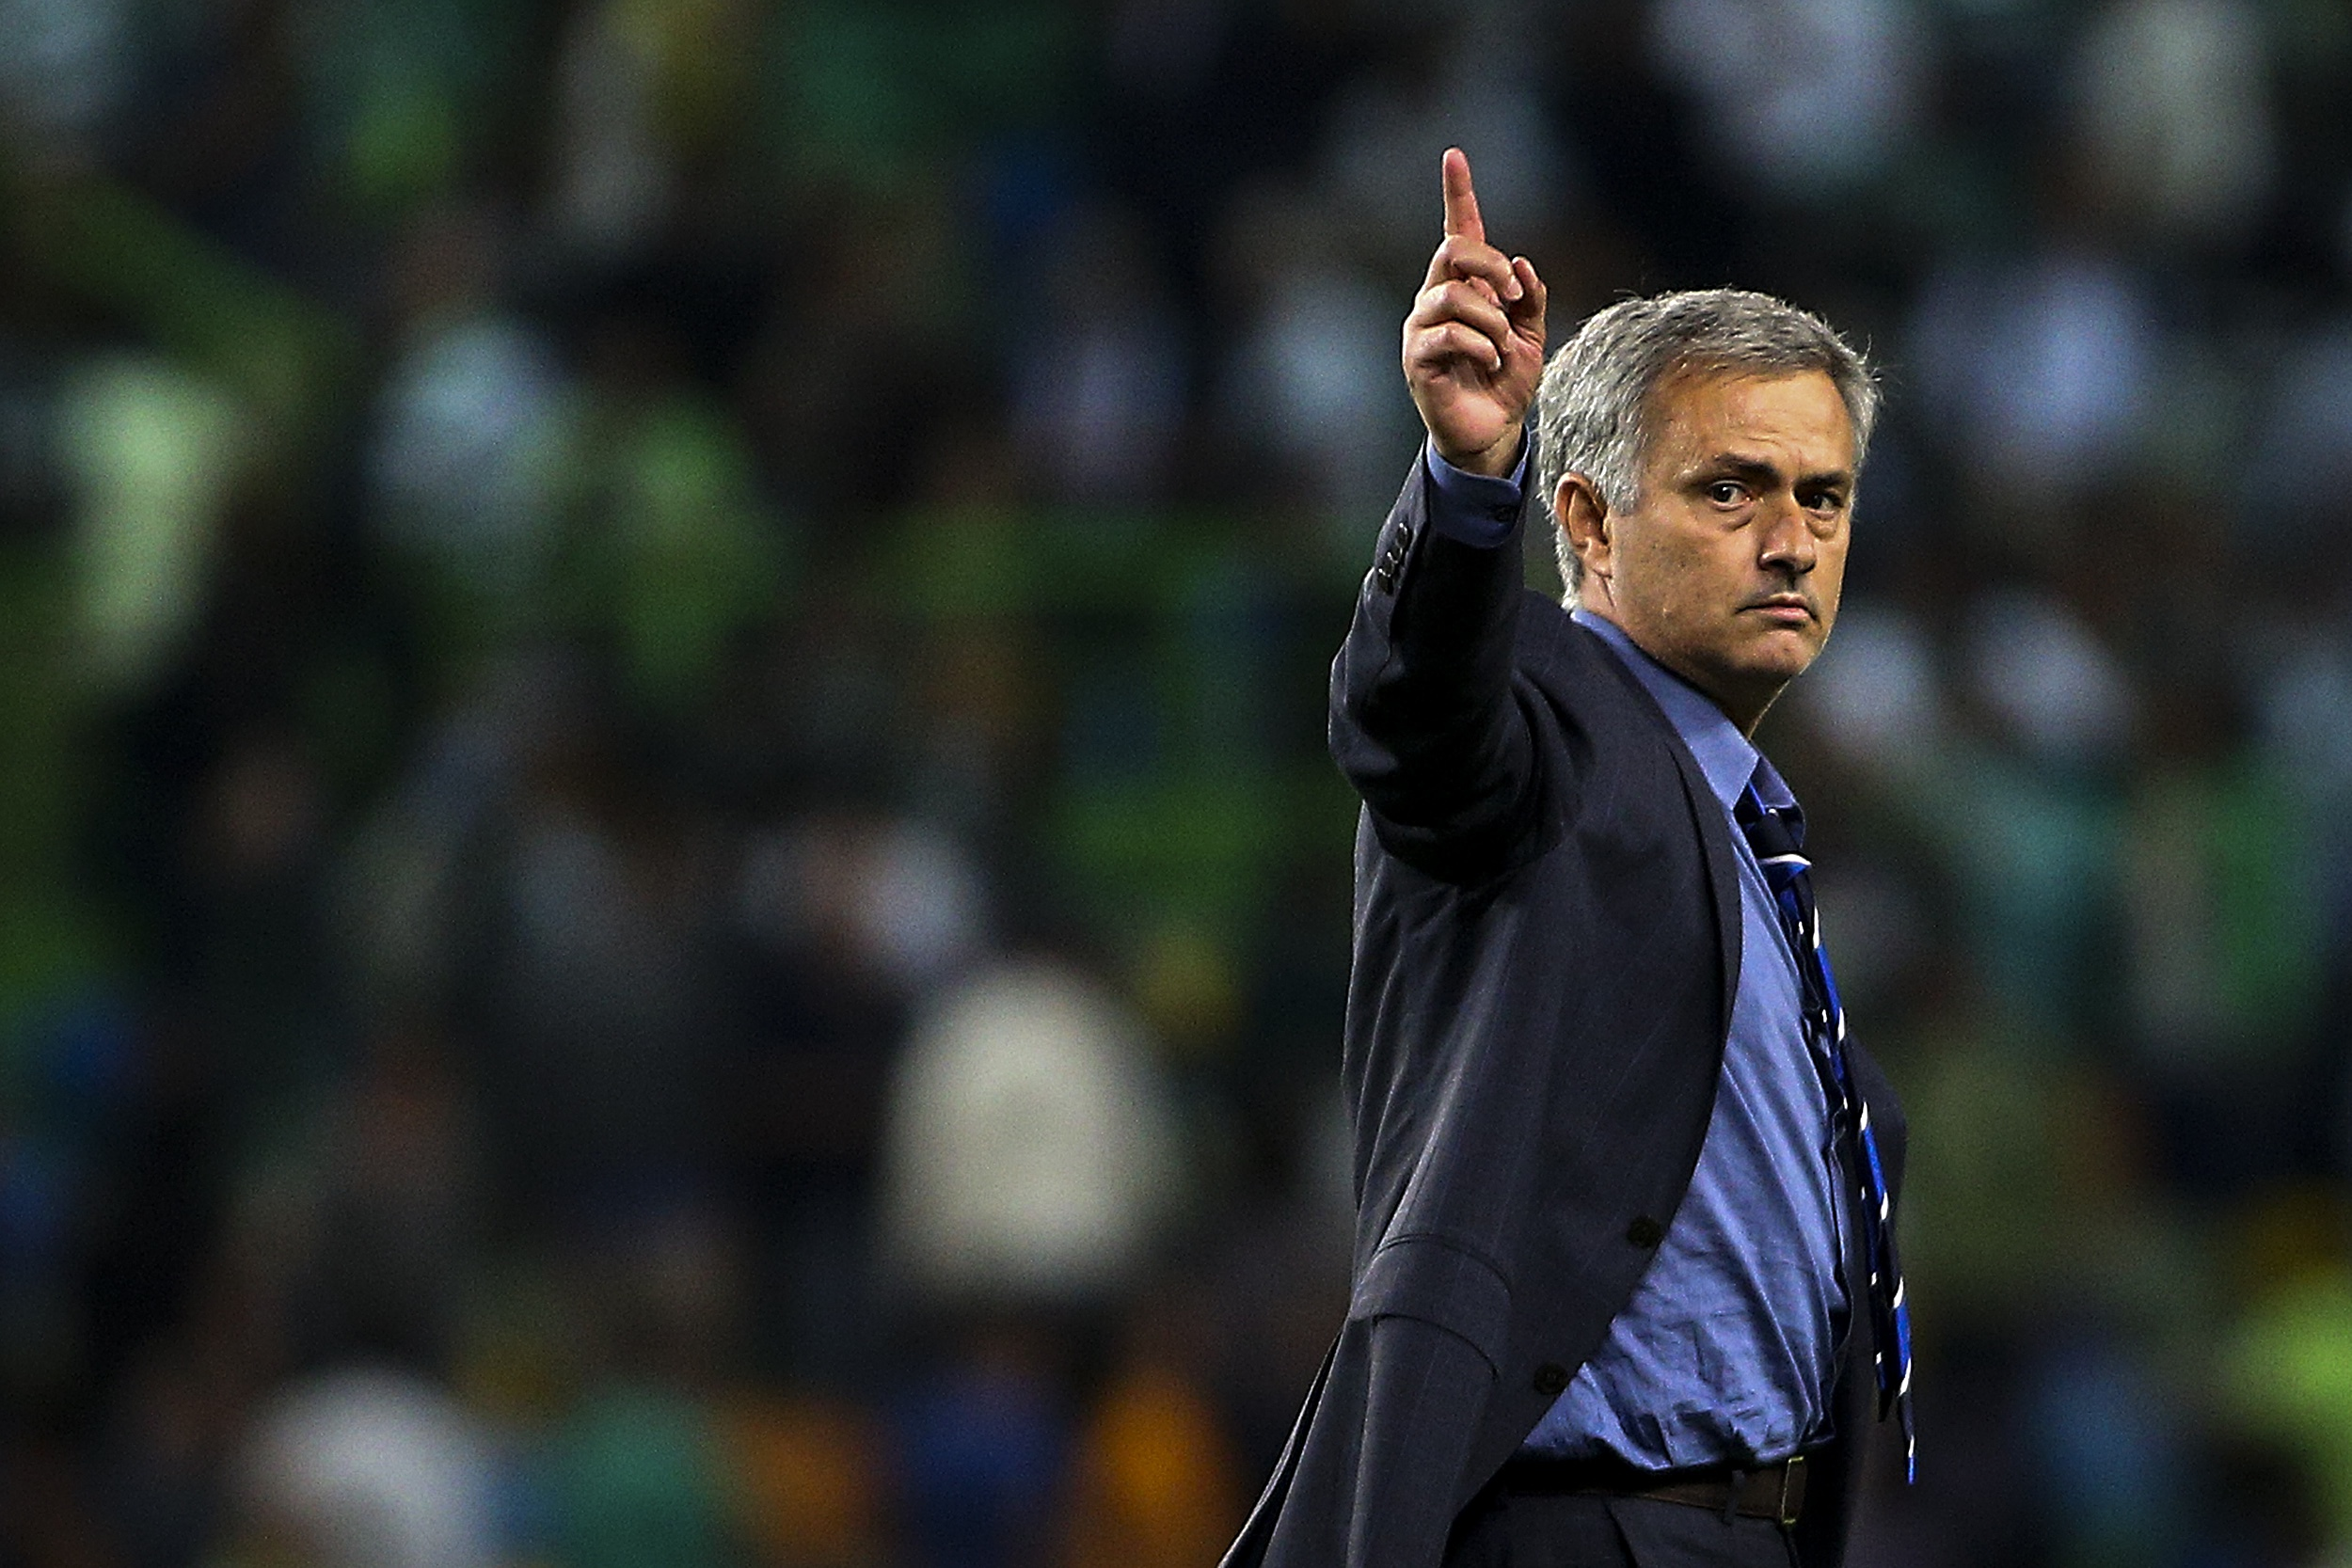 mynaijainfo.com/chelsea-may-not-finish-top-four-mourinho-see